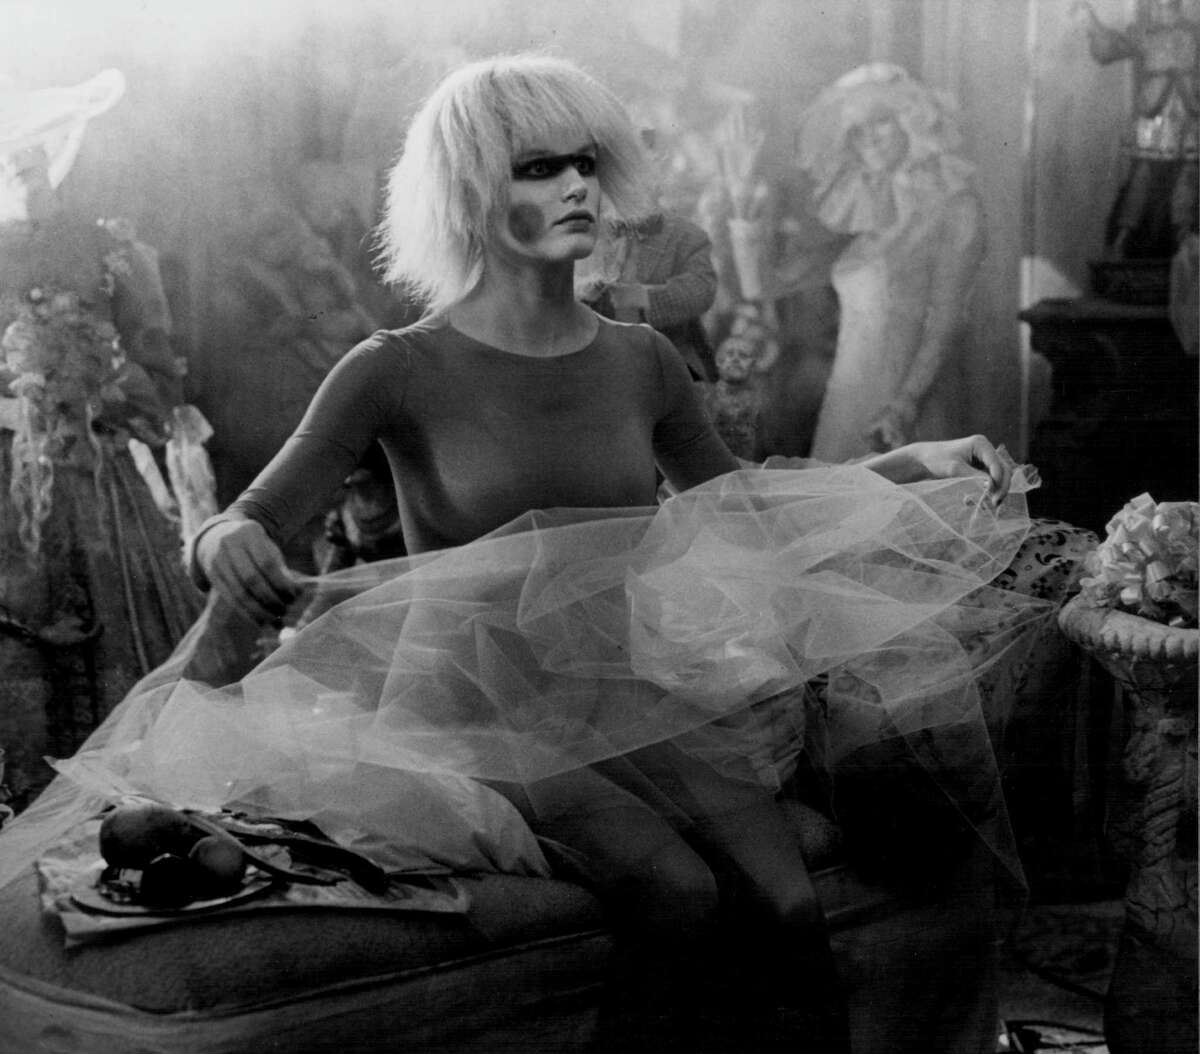 1982 - Actress Daryl Hannah in a scene from the movie 'Blade Runner', 1982.